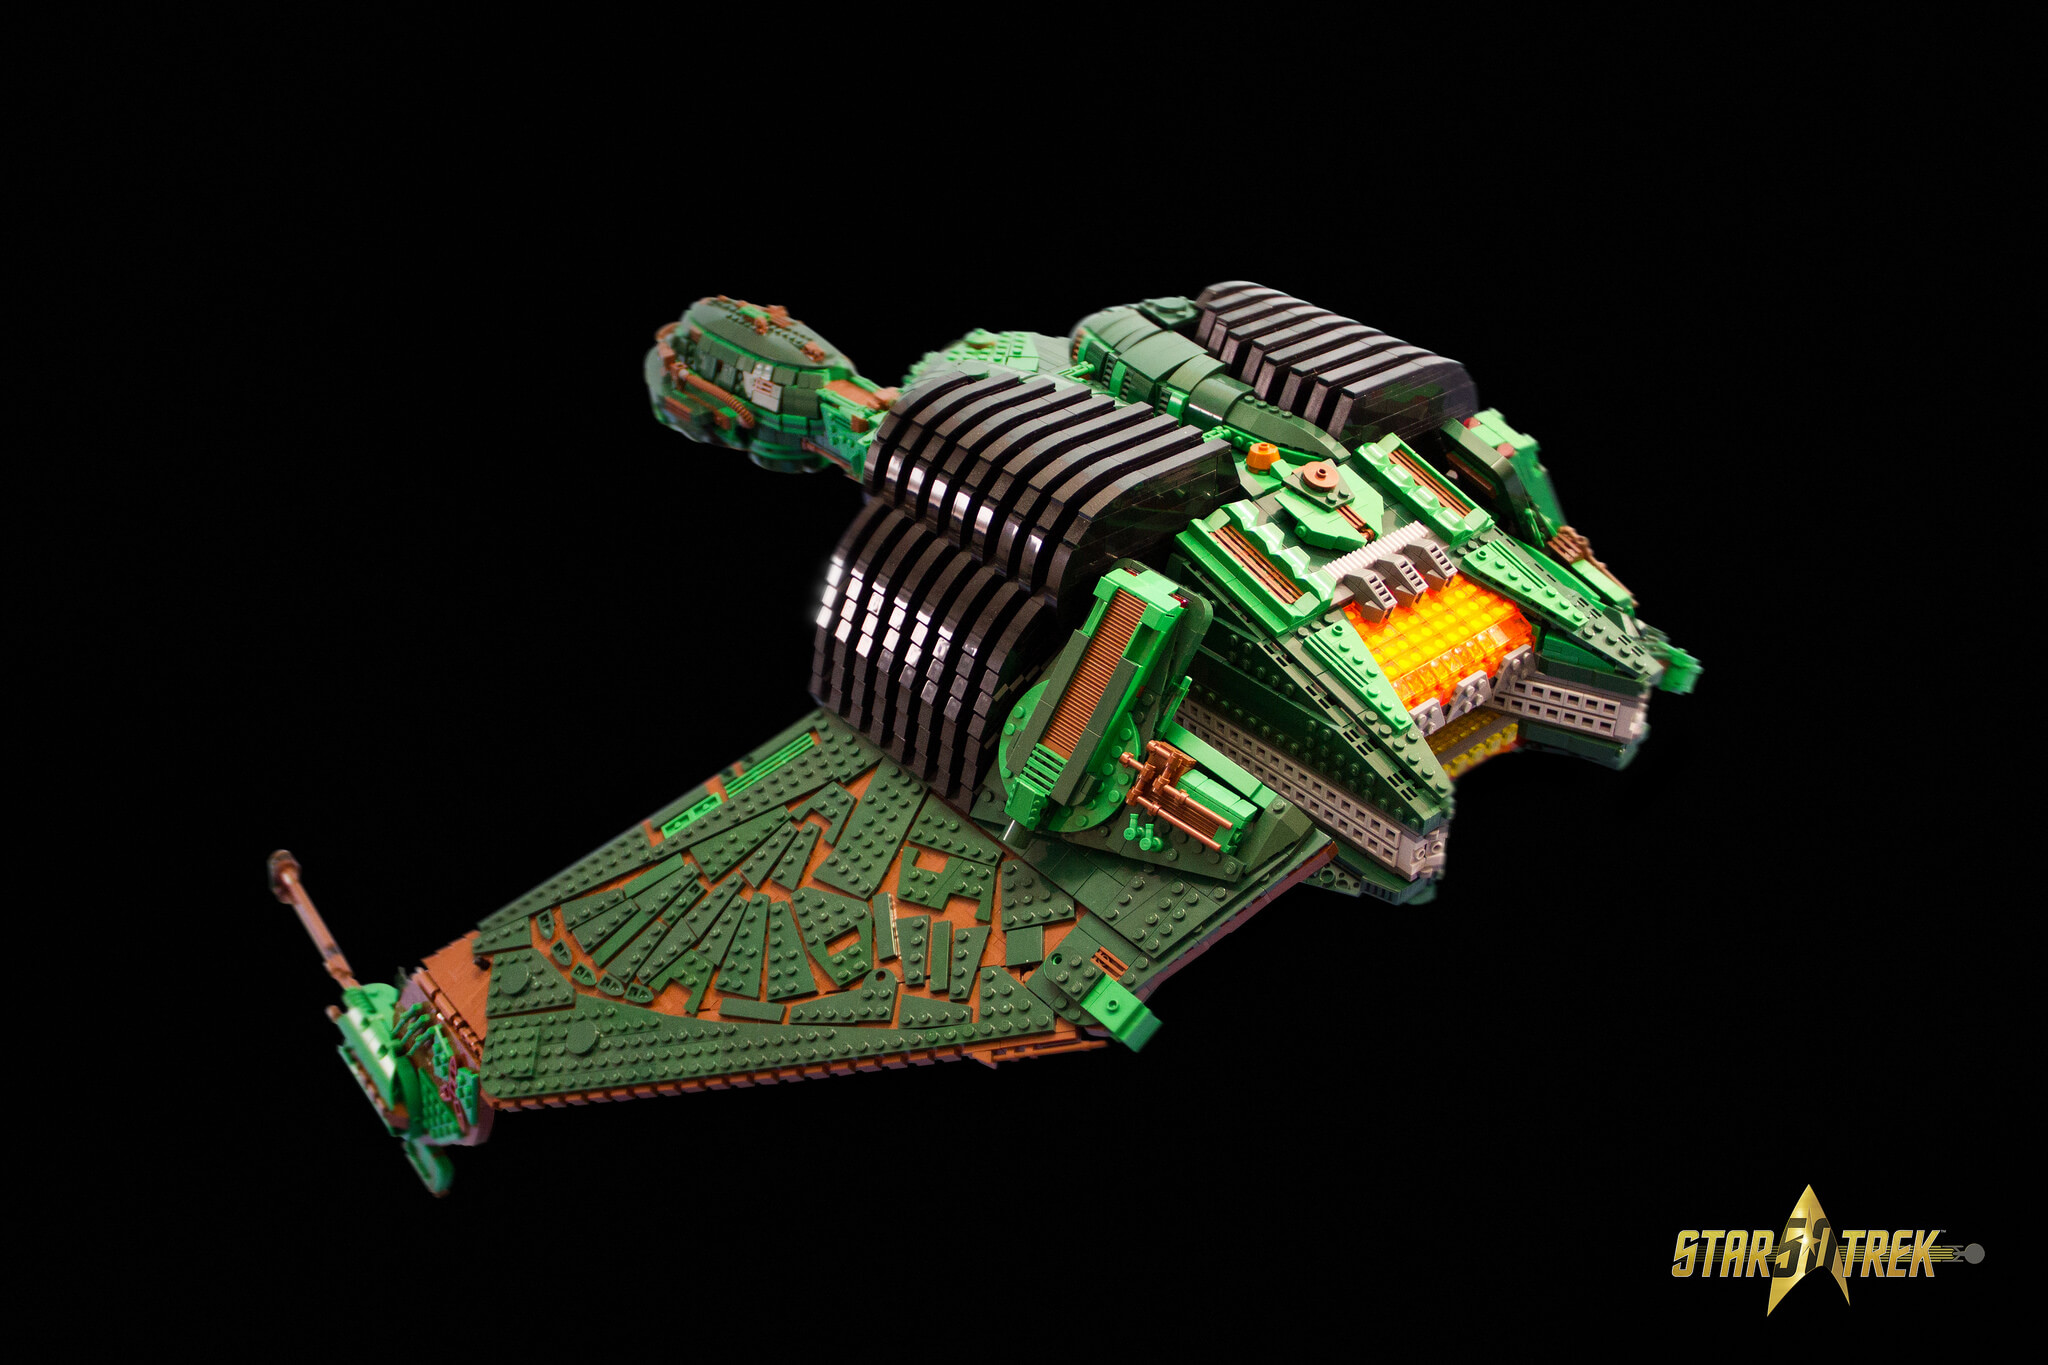 lego star trek bird of prey 2 (1)